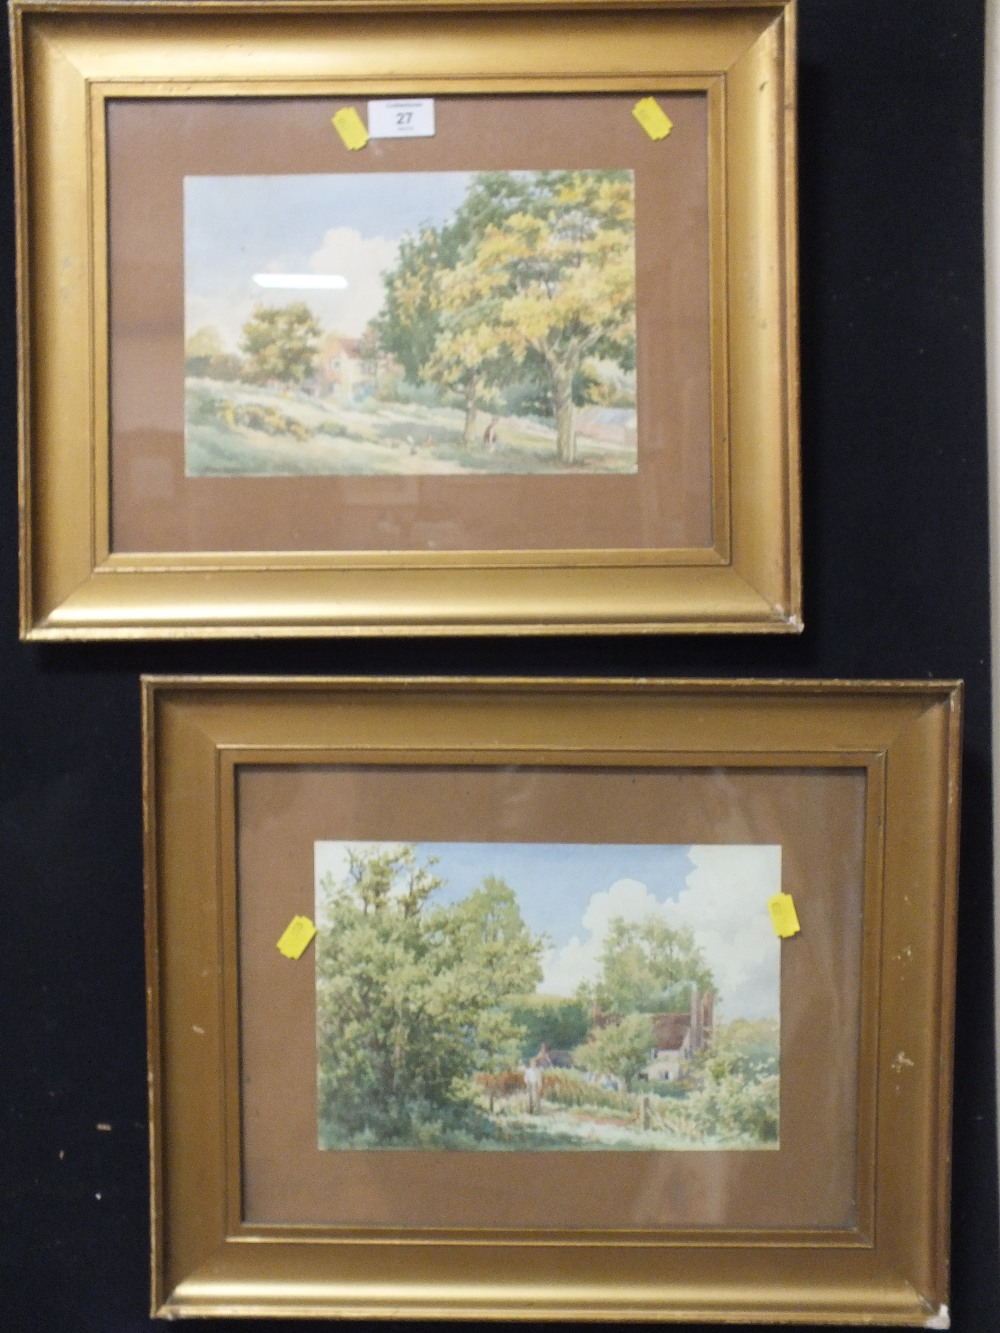 Lot 27 - A PAIR OF GILT FRAMED AND GLAZED WATERCOLOURS SIGNED FRED C BRETTEL DEPICTING RURAL SCENES WITH